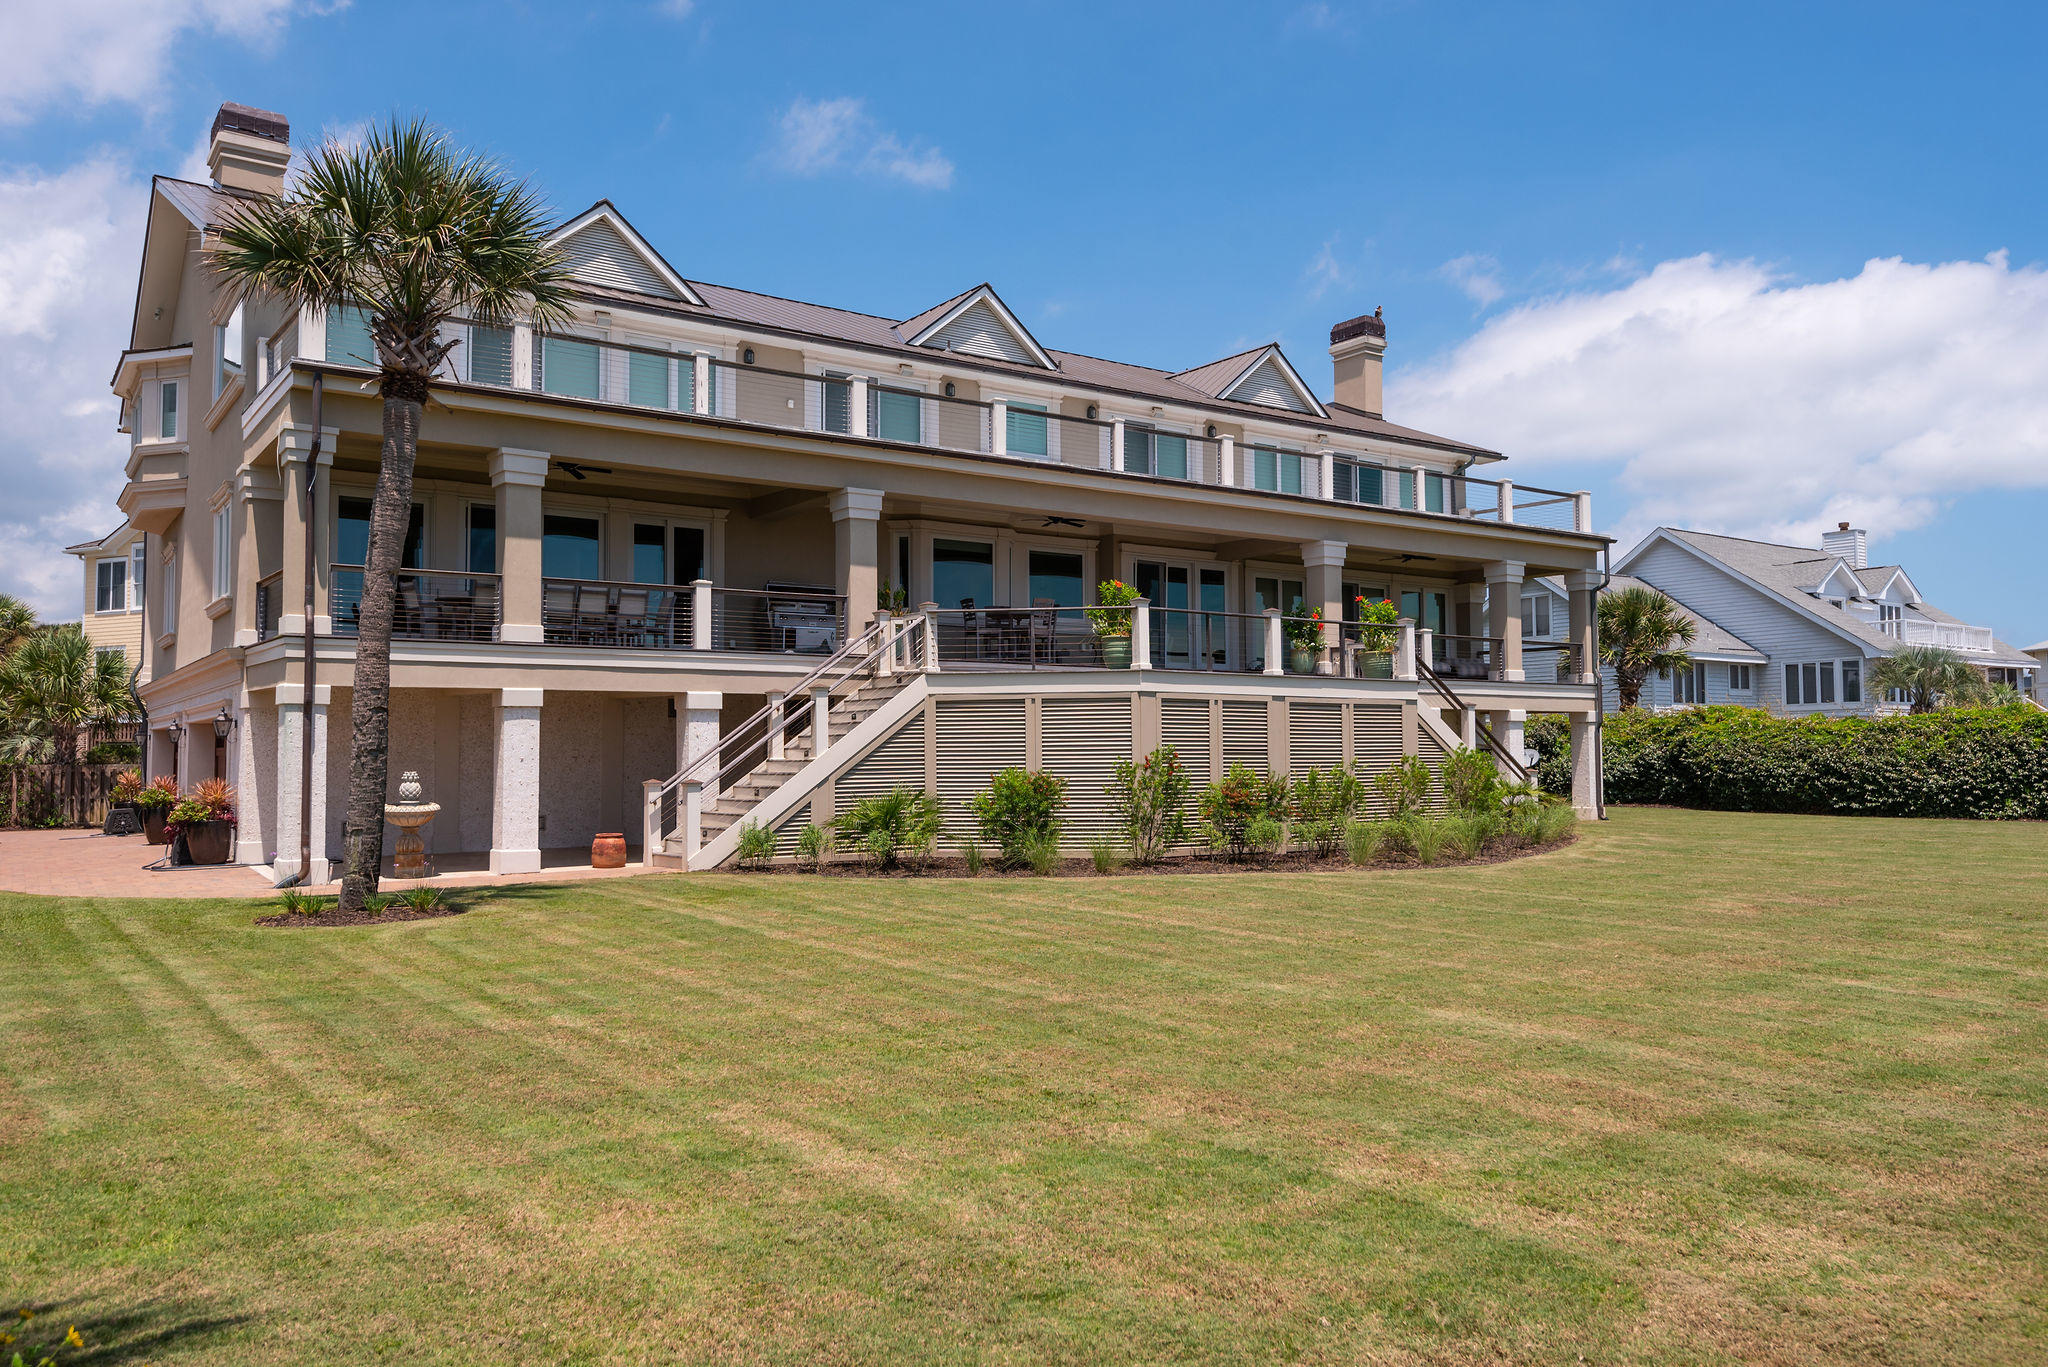 Isle of Palms Homes For Sale - 2 50th, Isle of Palms, SC - 24